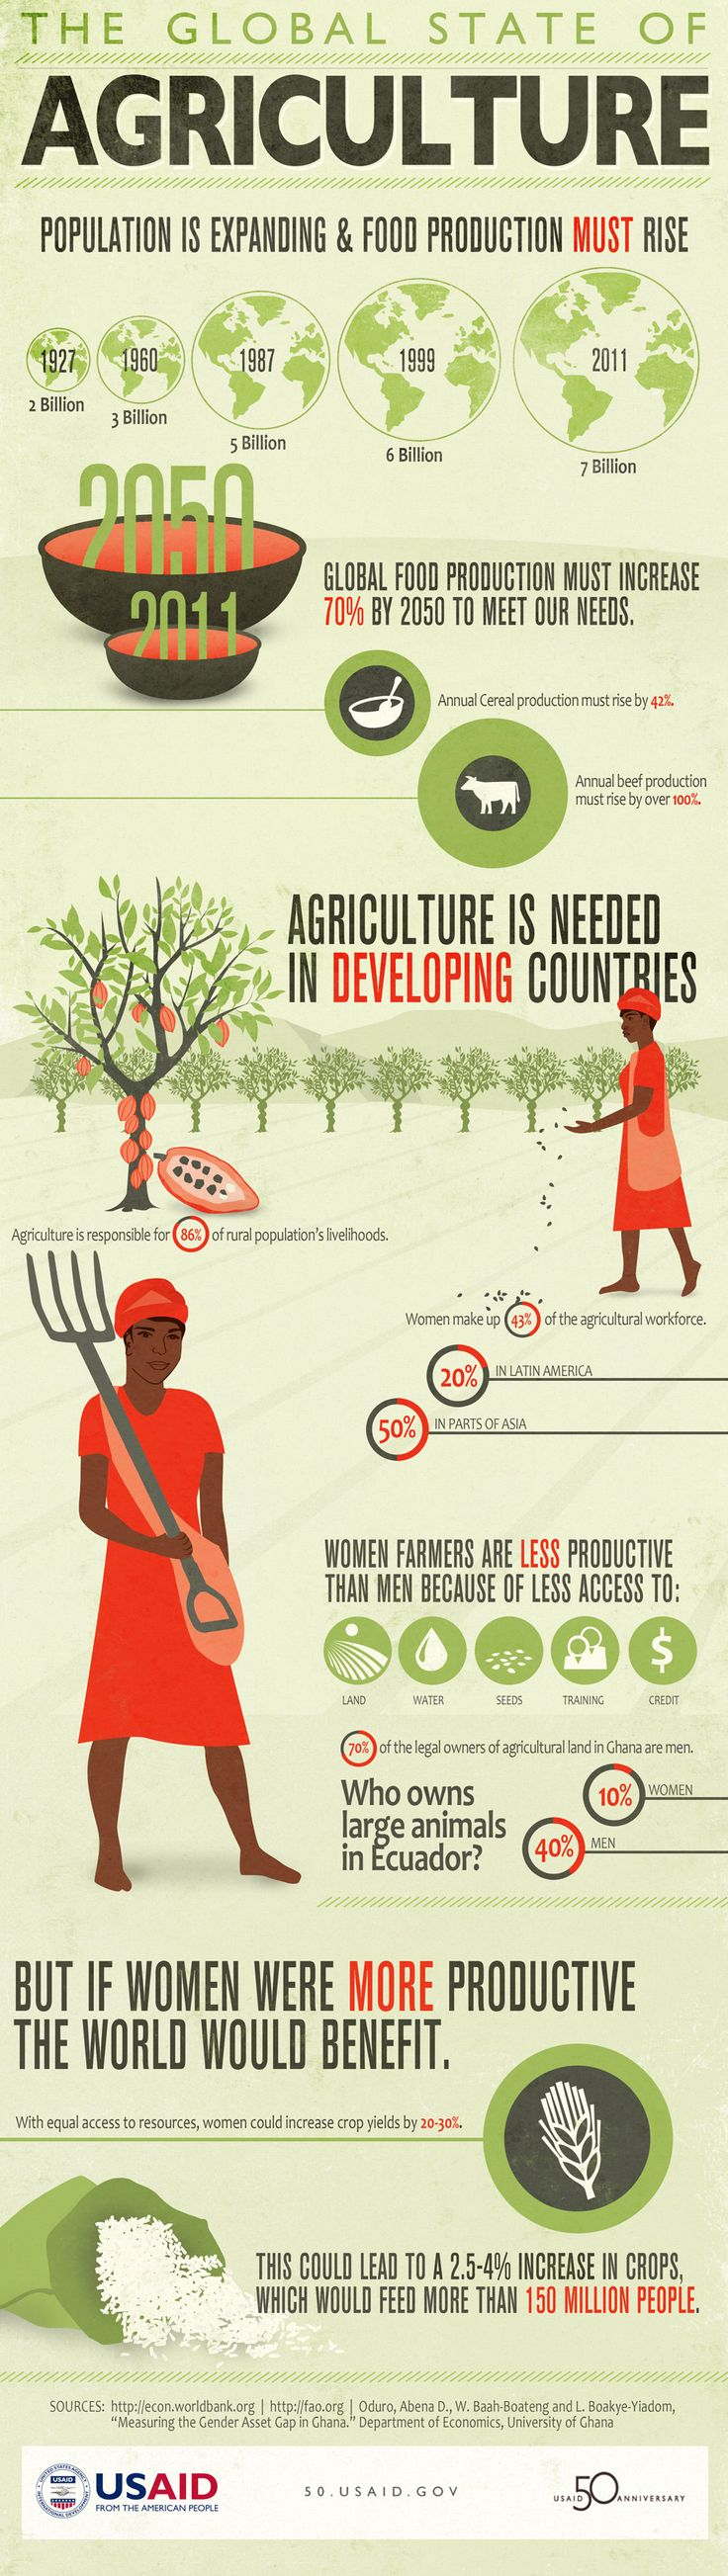 The Global State of Agriculture: USAID agriculture infographic